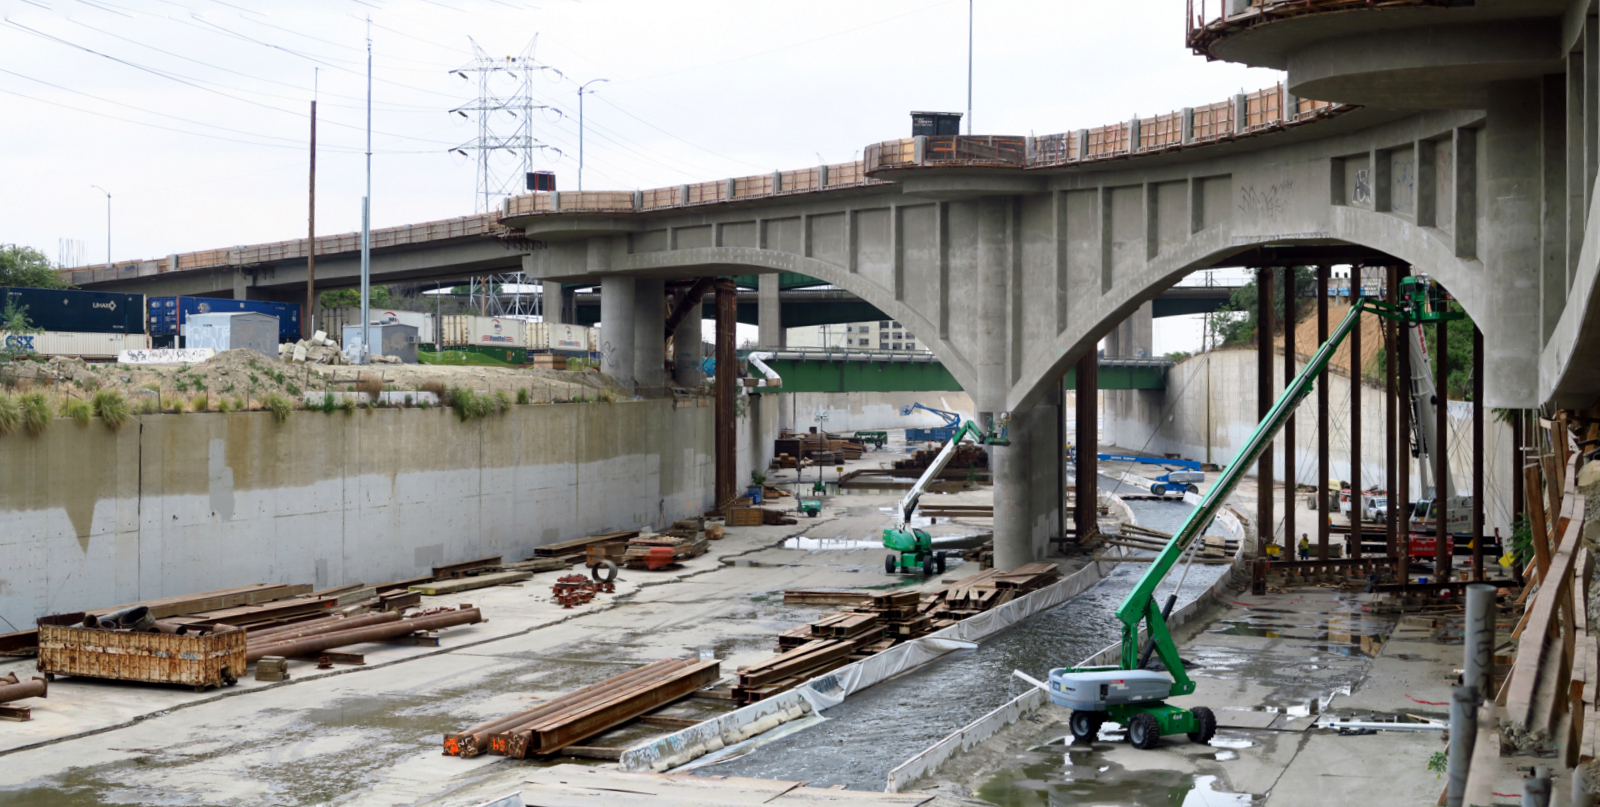 Work on the 'skirt' at Riverside Drive viaduct, 2015